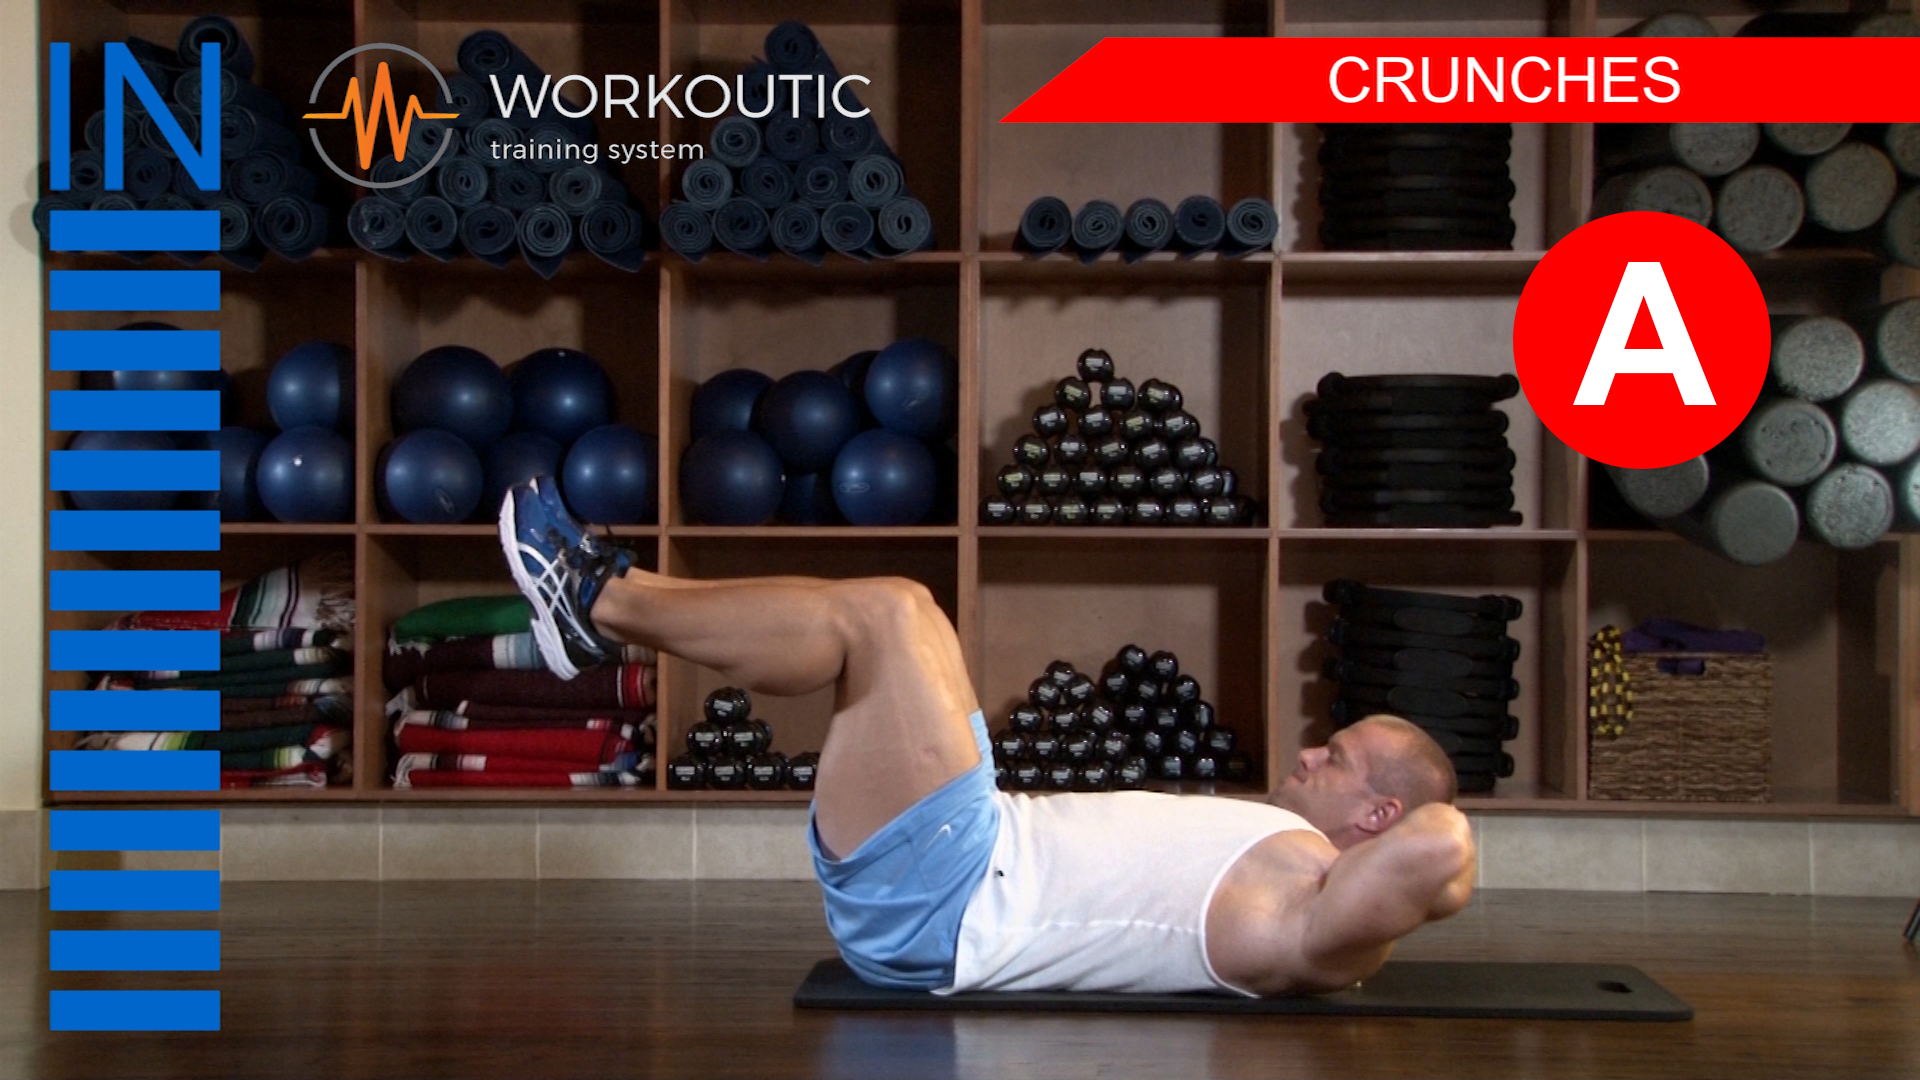 Abs Exercises - Workutic - 6 pack special - Crunches Inhale